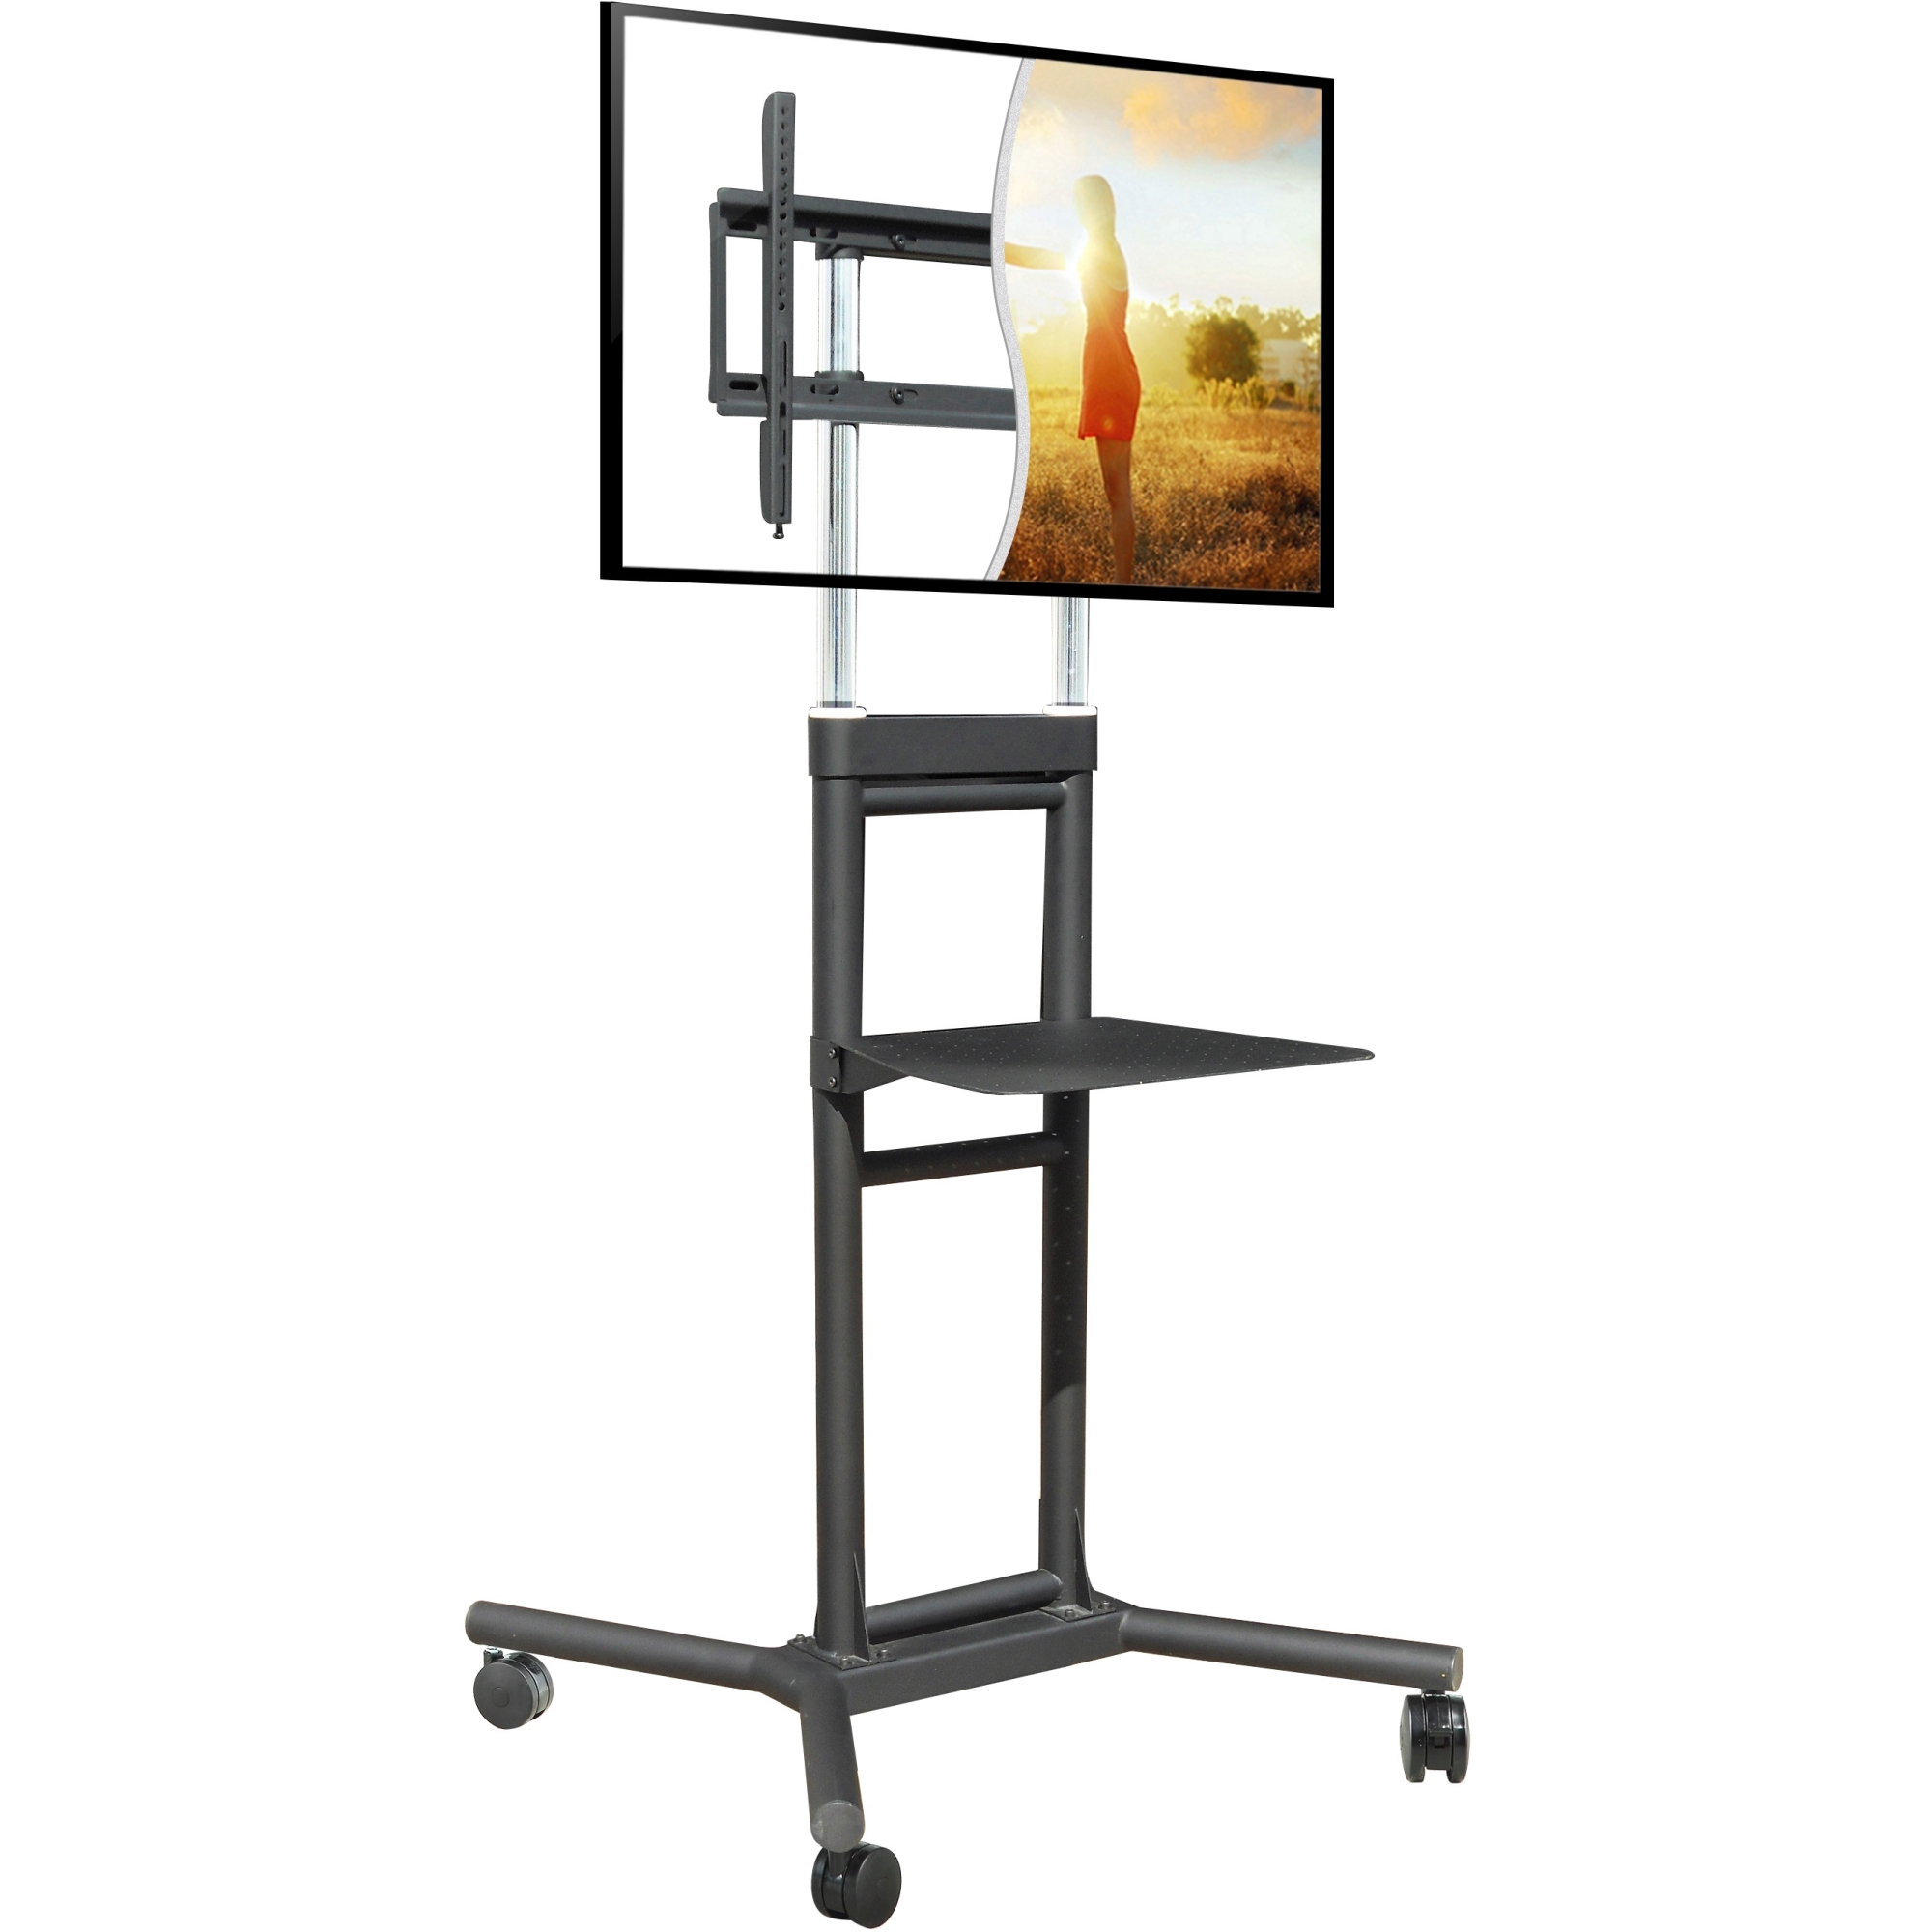 MOBILE TV CART 32-70IN 132 LBS ADJ HEIGHT WITH SHELF LIFETIME